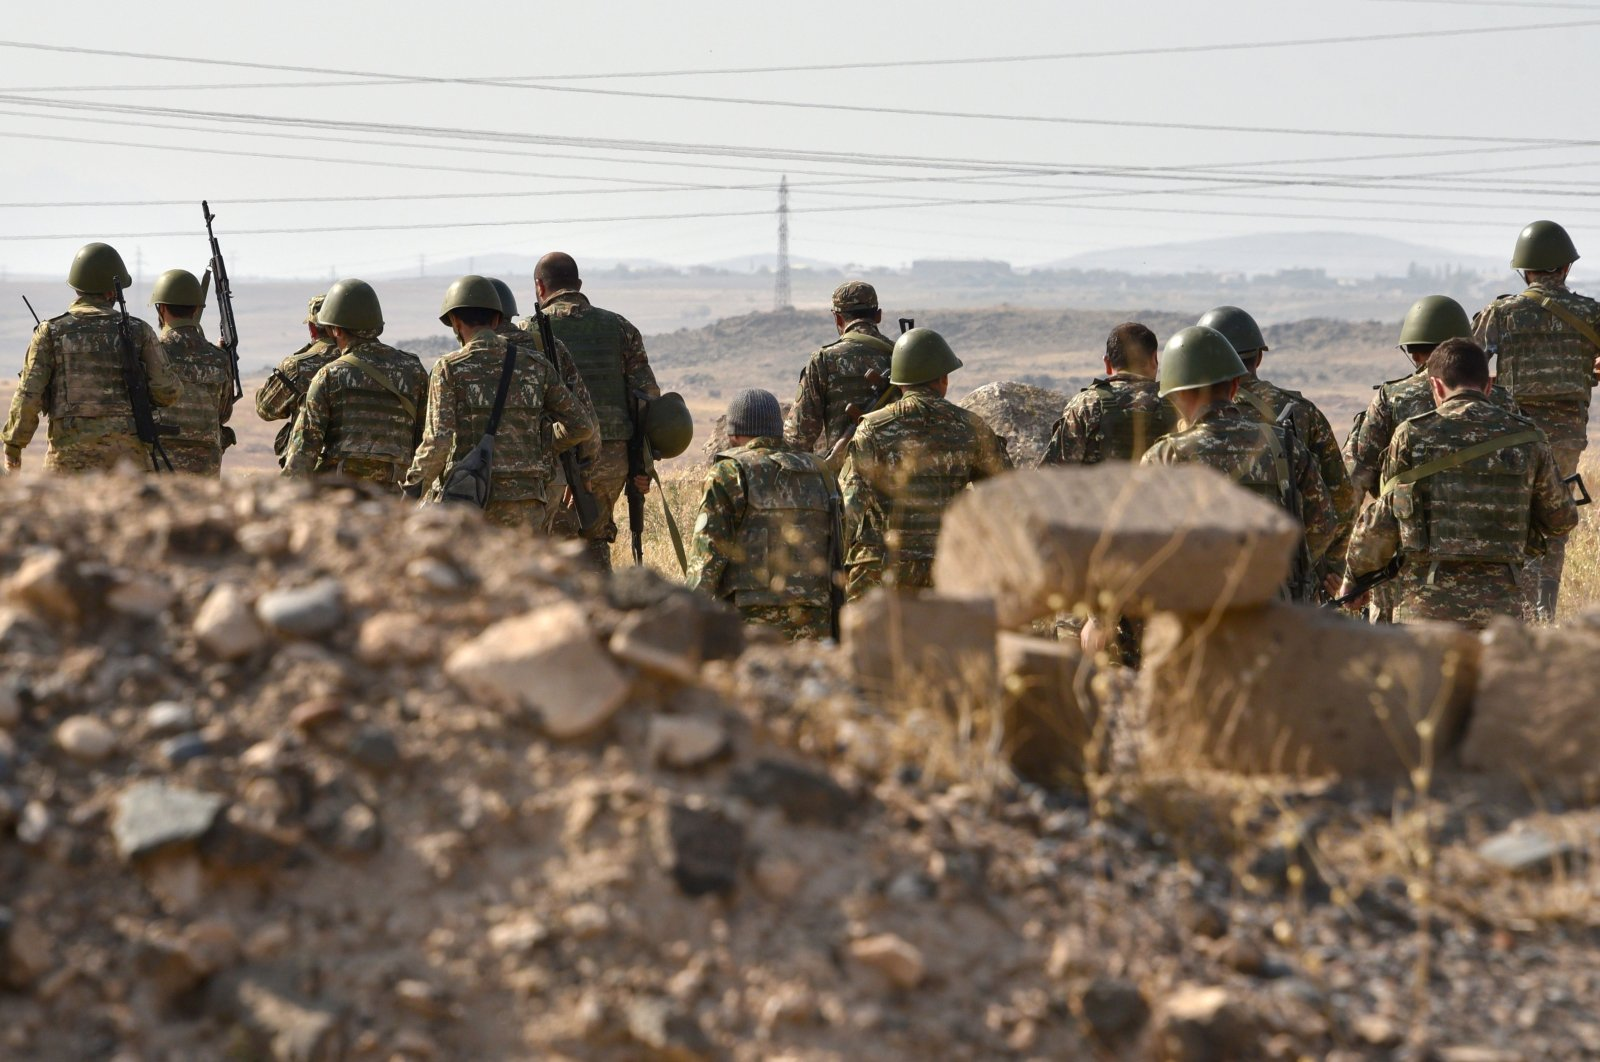 Armenian forces undergo military training before leaving for the frontline in Nagorno-Karabakh, at a range in Armenia's Armavir region, Oct. 27, 2020. (AFP Photo)